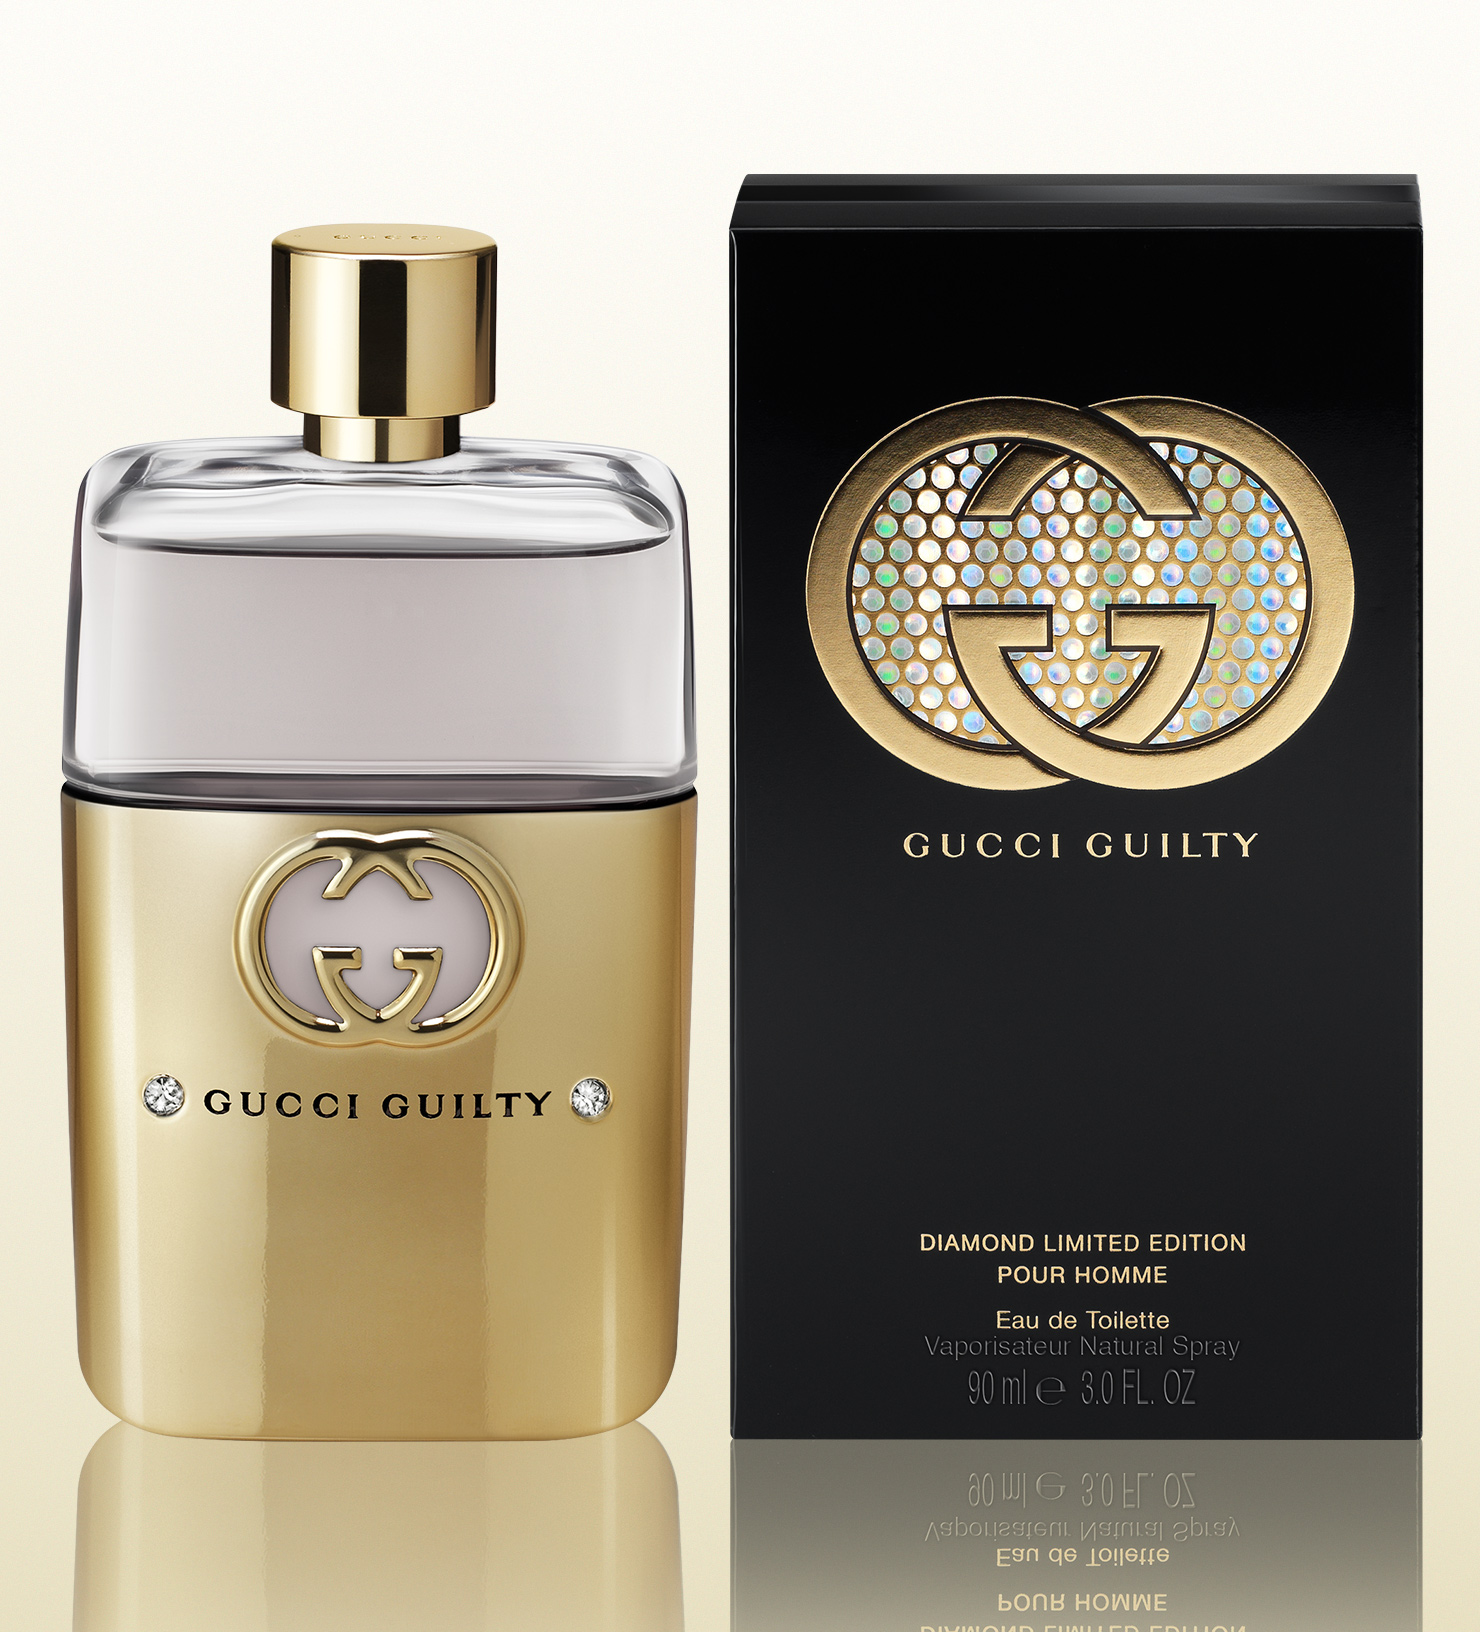 Gucci Guilty Pour Homme Diamond Gucci Cologne A Fragrance For Men 2014